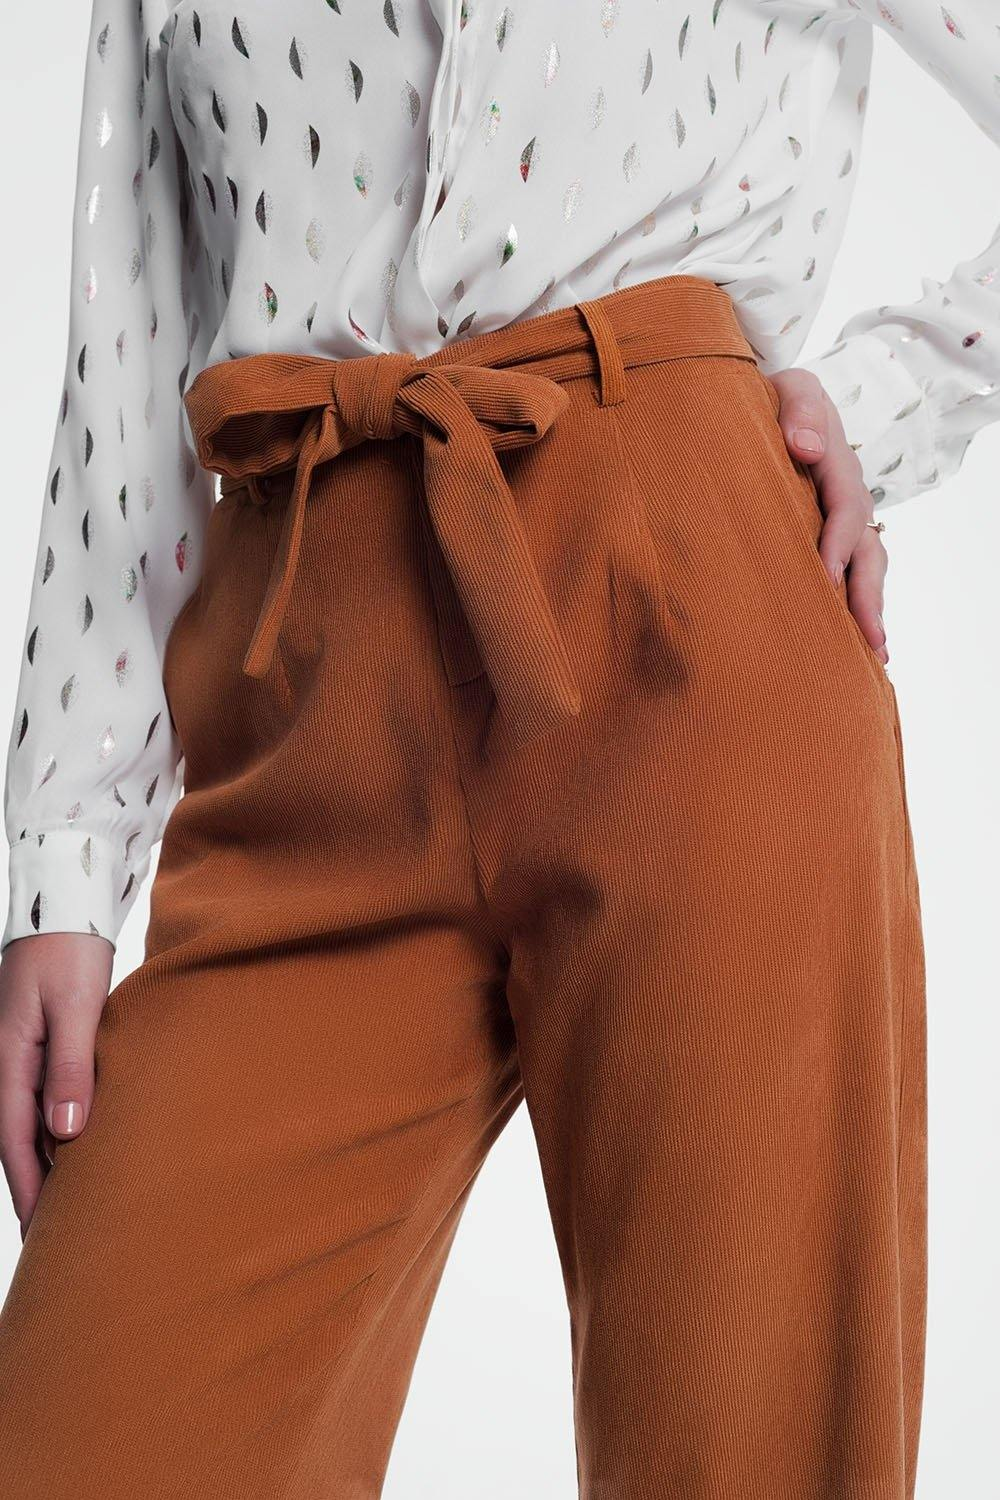 Q2 High waisted camel coloured pants